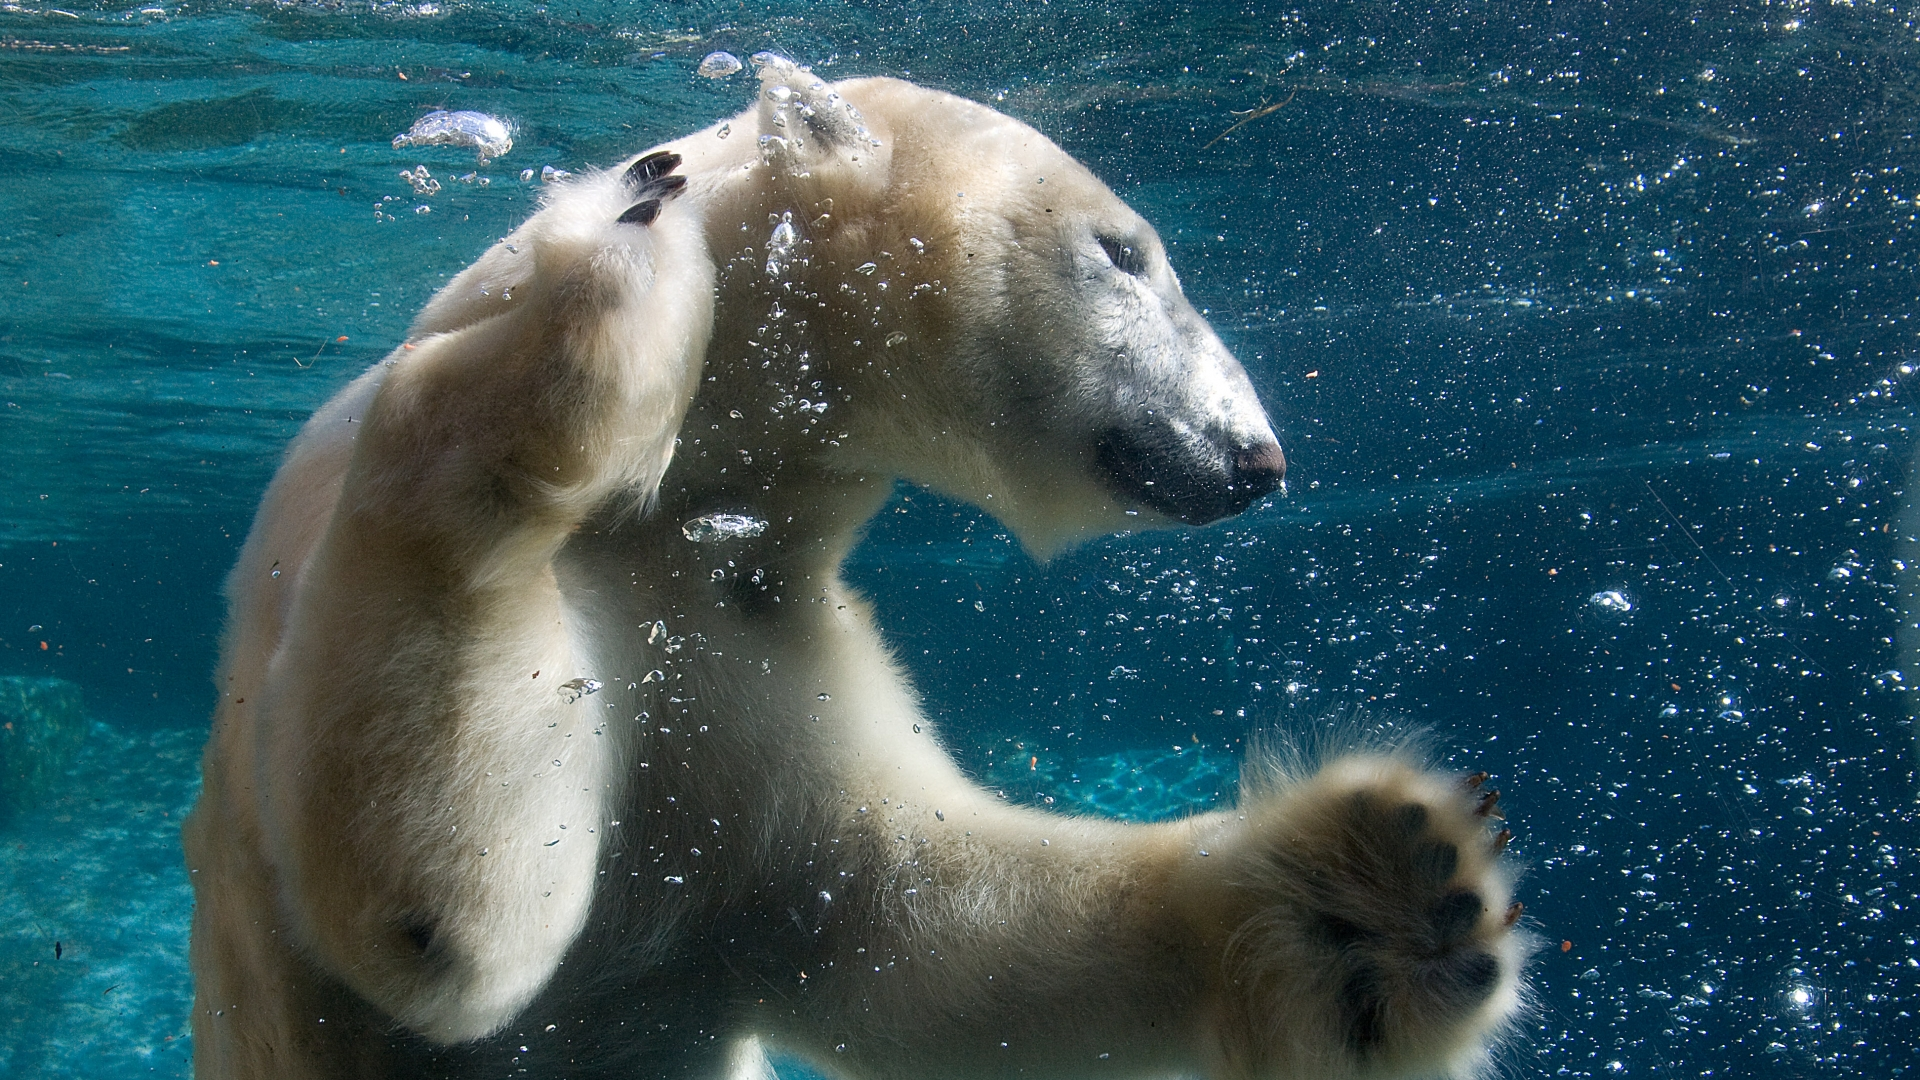 Animals-1920x1080-Full-HD-1080p-Funny-Animals-Swimming-Polar-Bear-Full-wallpaper-wp3602501